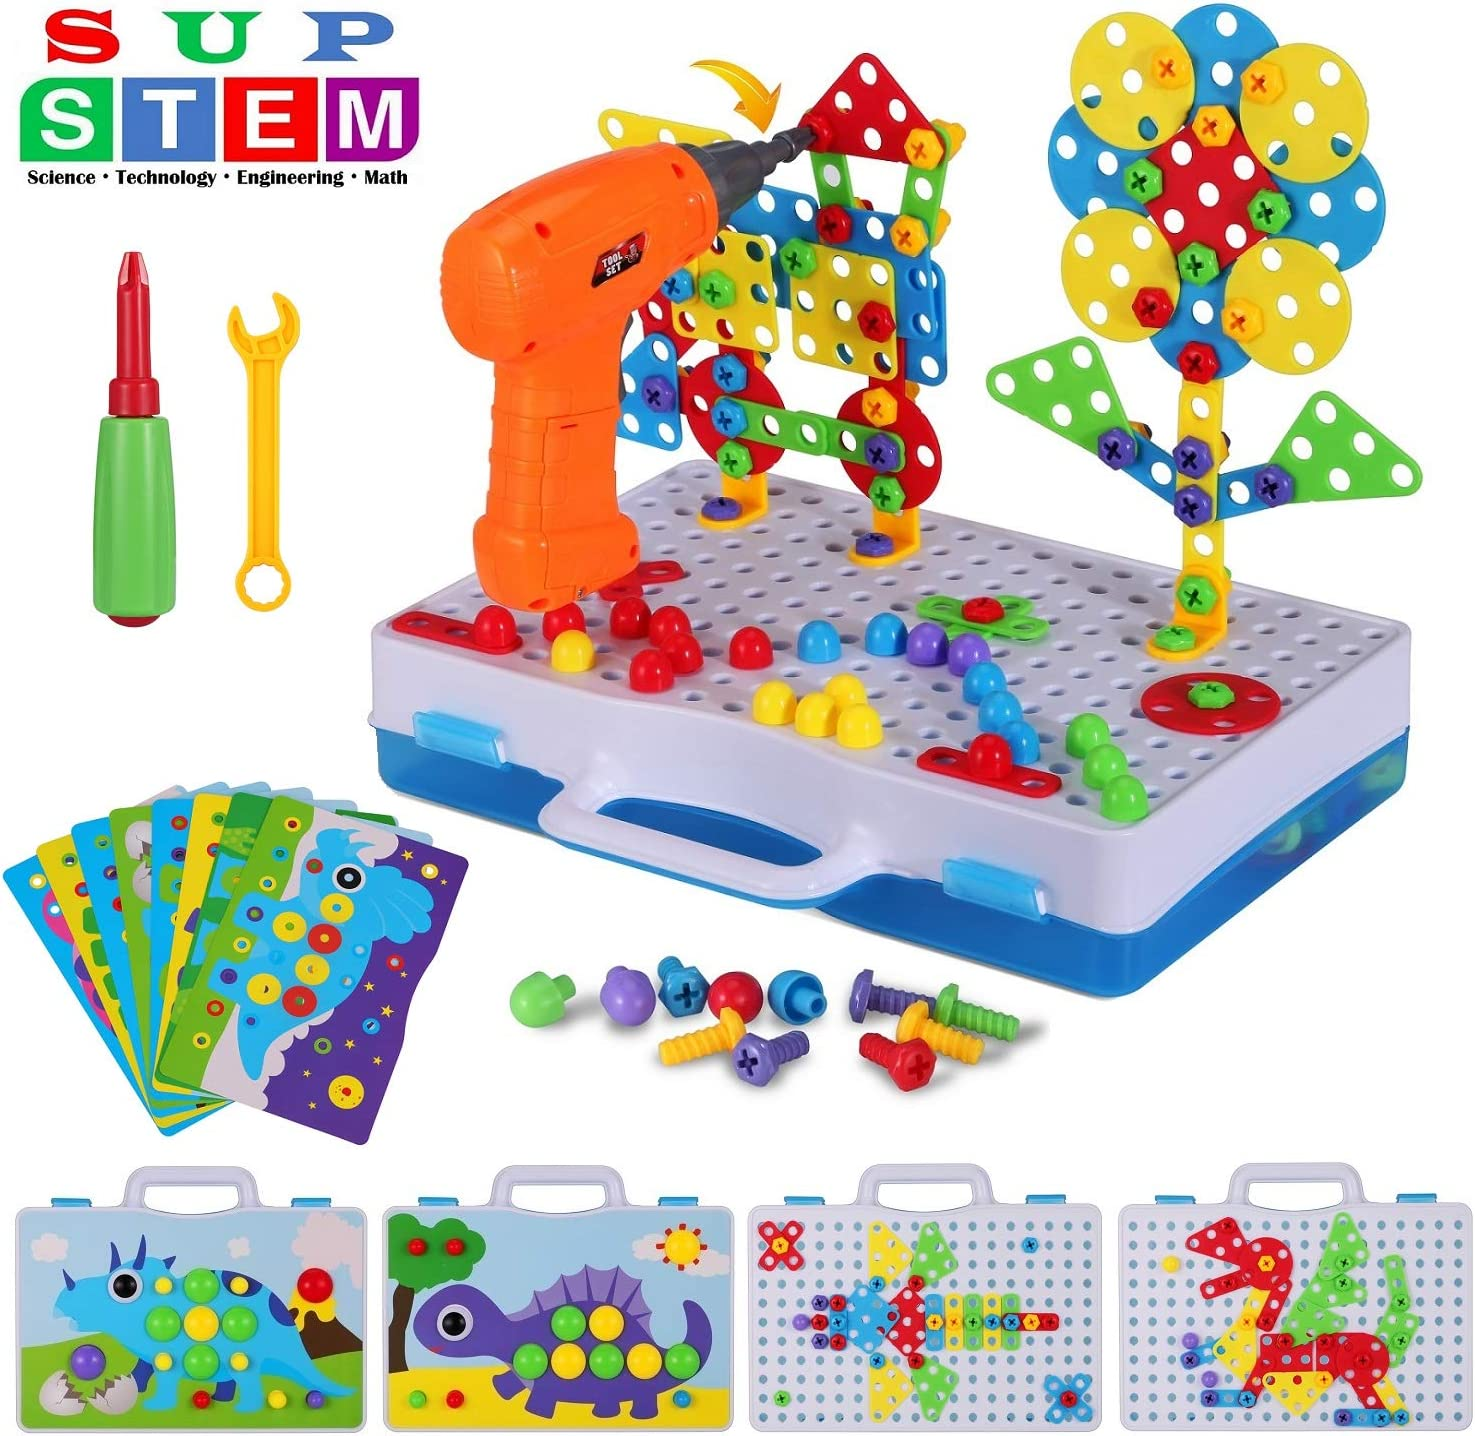 STEM Learning 224 Pcs Educational Construction Engineering Building Blocks Sets